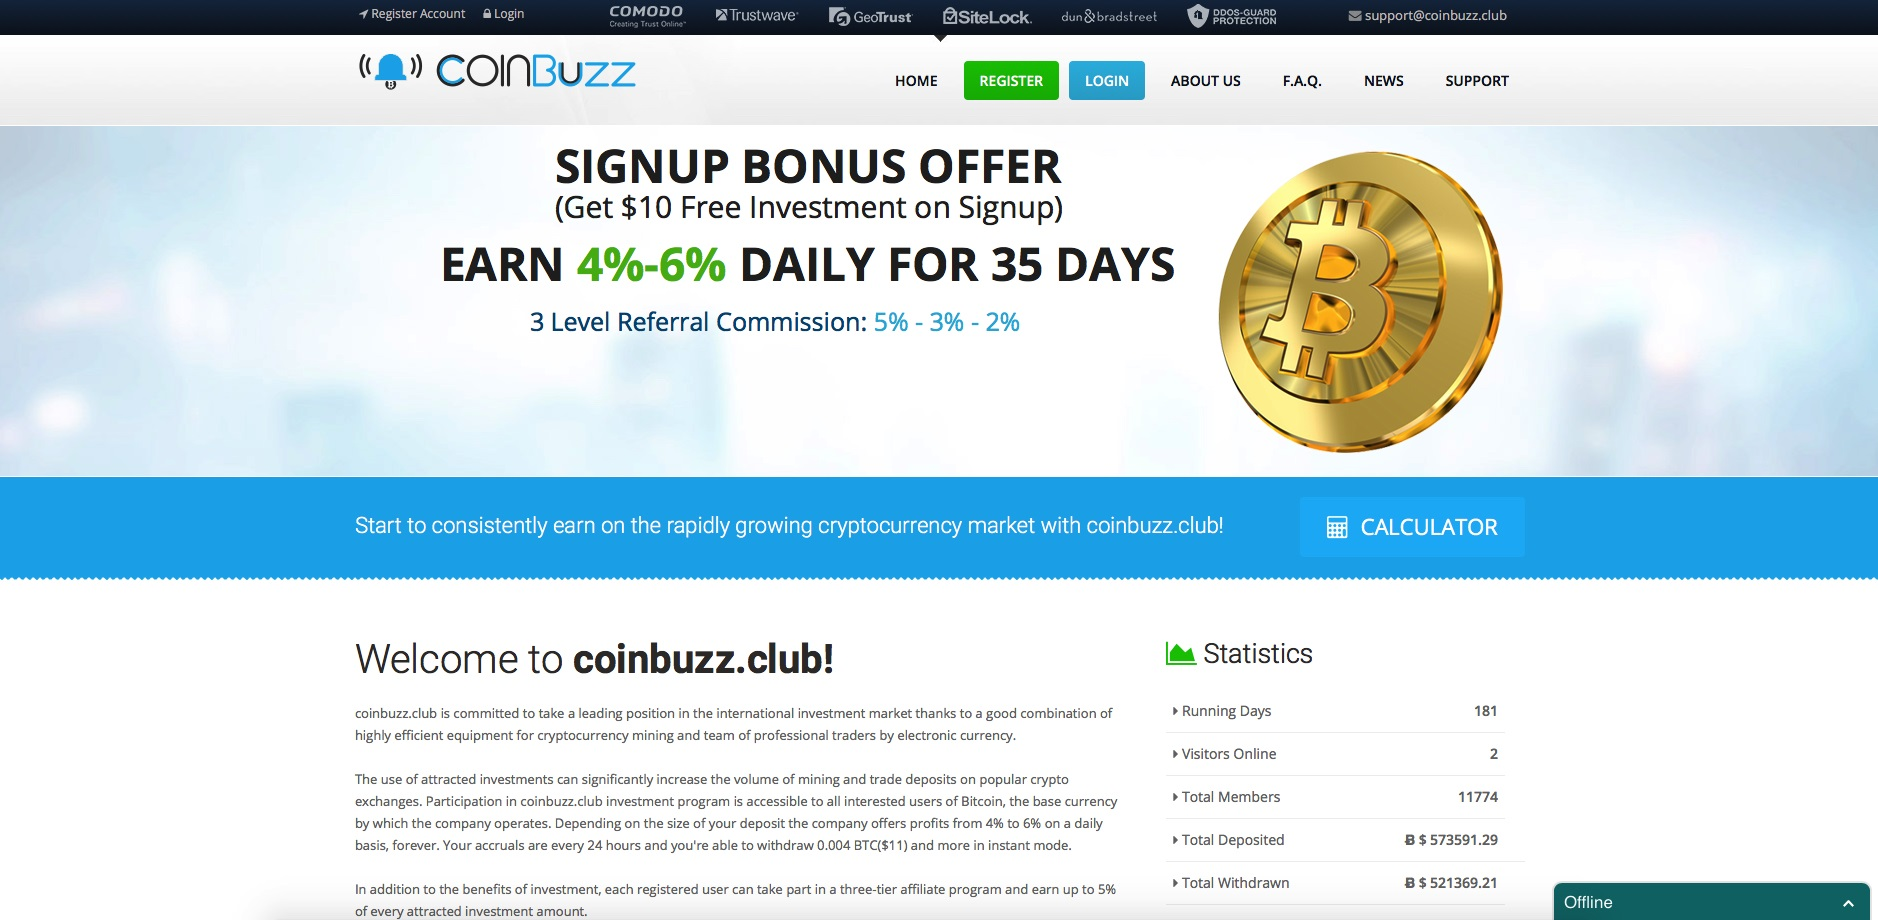 coinbuzz.club - COINBuzz